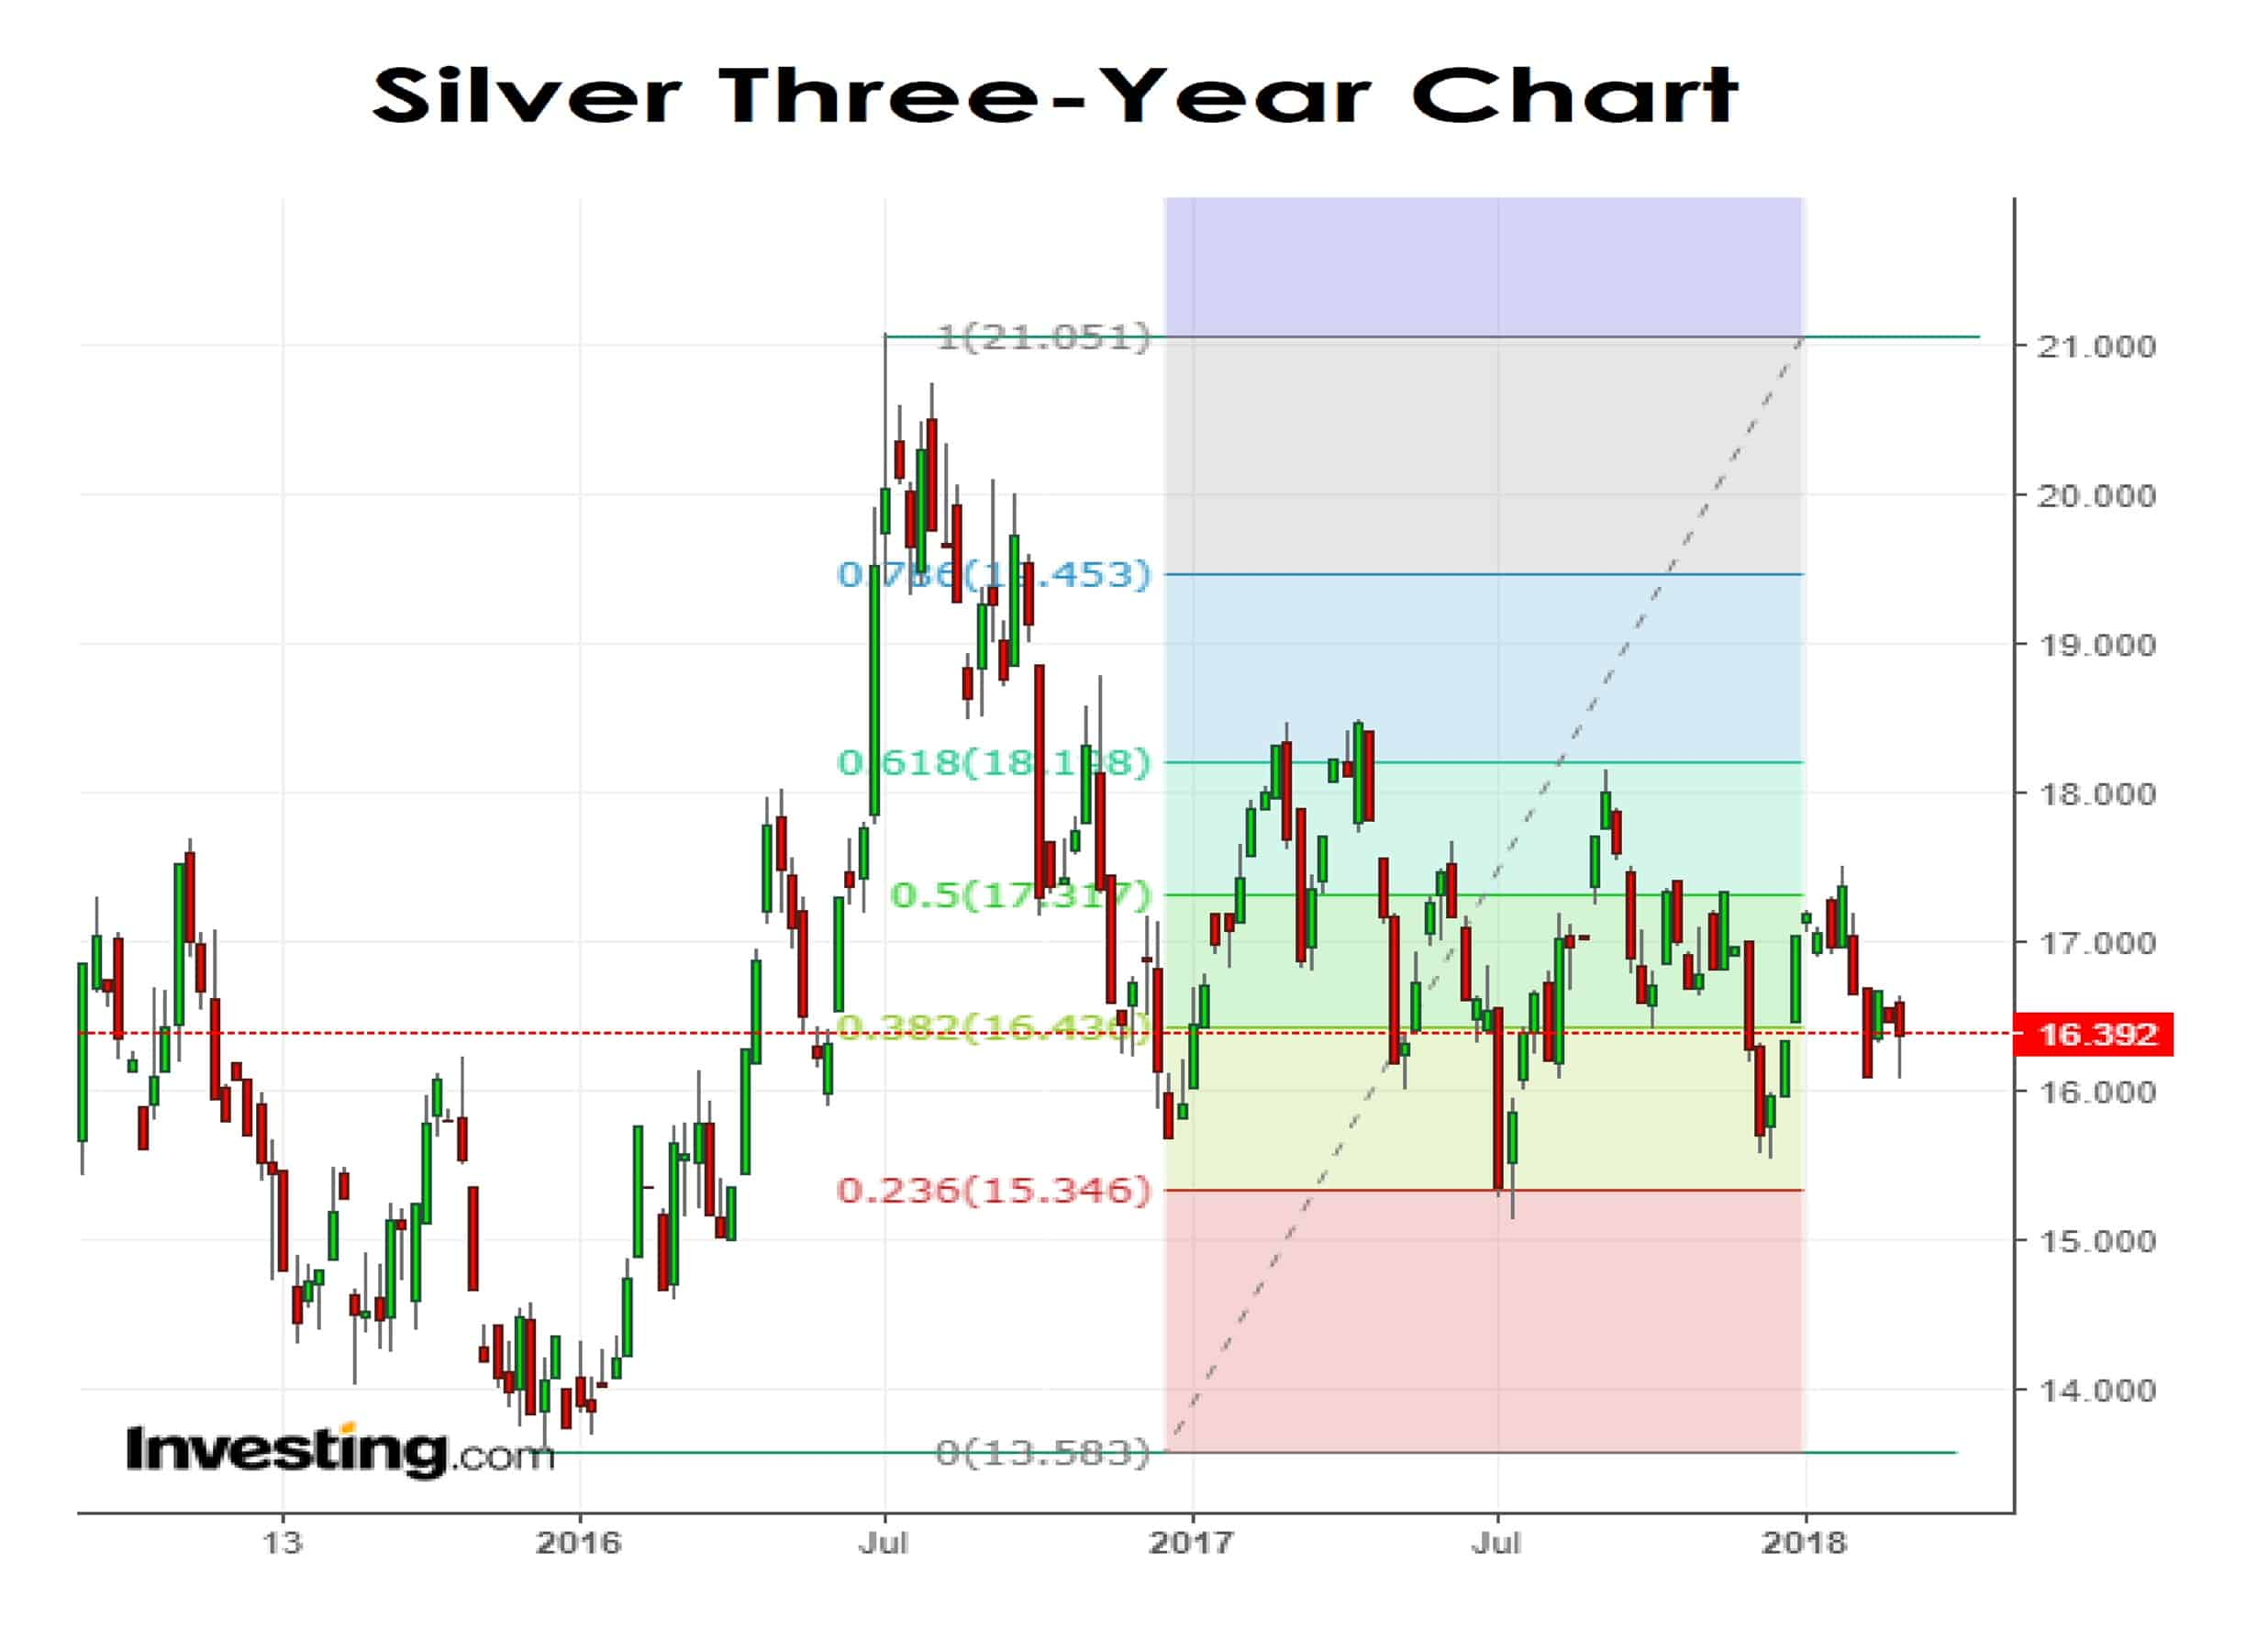 Silver Three-Year Chary 05-03-18